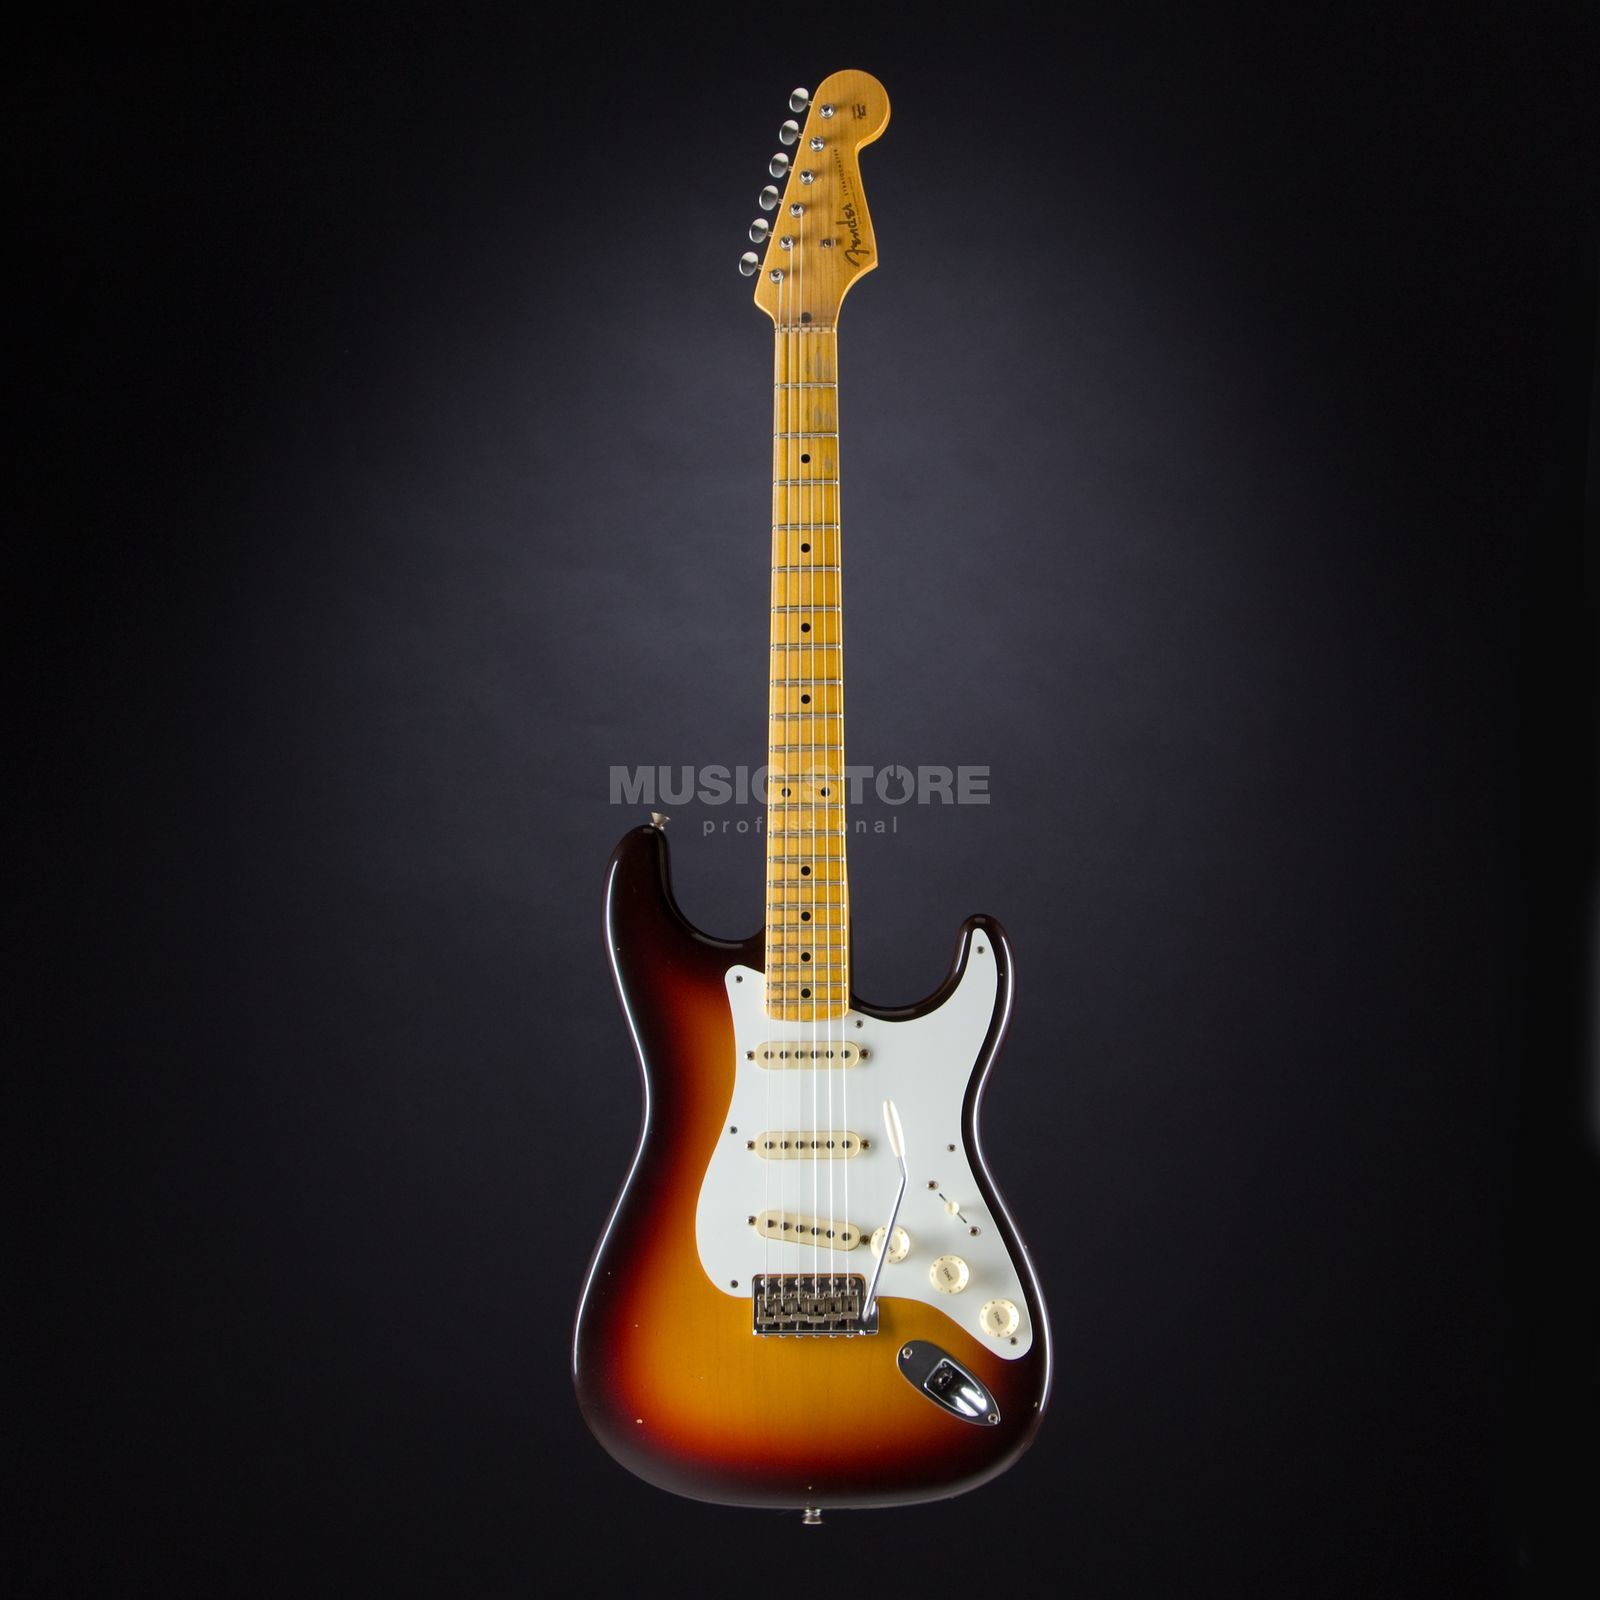 Fender 1958 Journeyman Relic Stratocaster Chocolate 3-Color Sunburst #CZ525642 Product Image